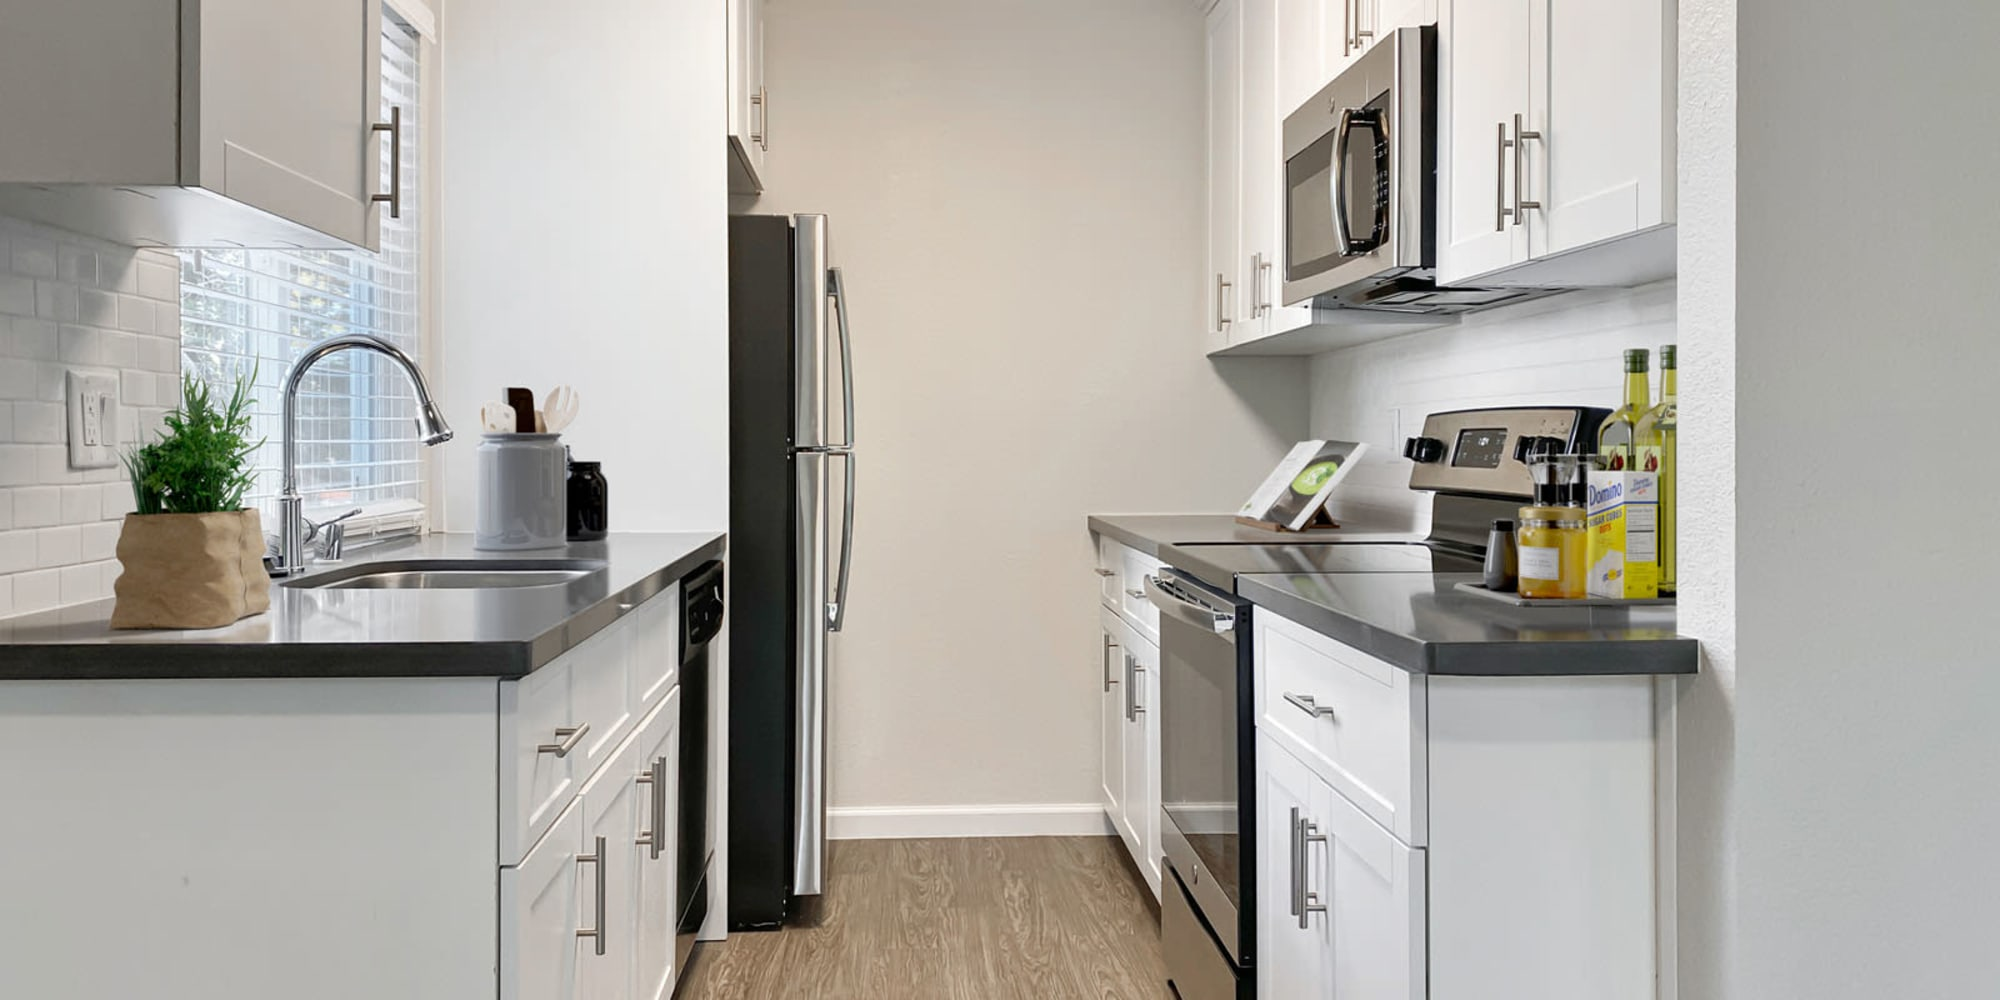 Stainless-steel appliances and bright white cabinetry in a model home's kitchen at Valley Plaza Villages in Pleasanton, California